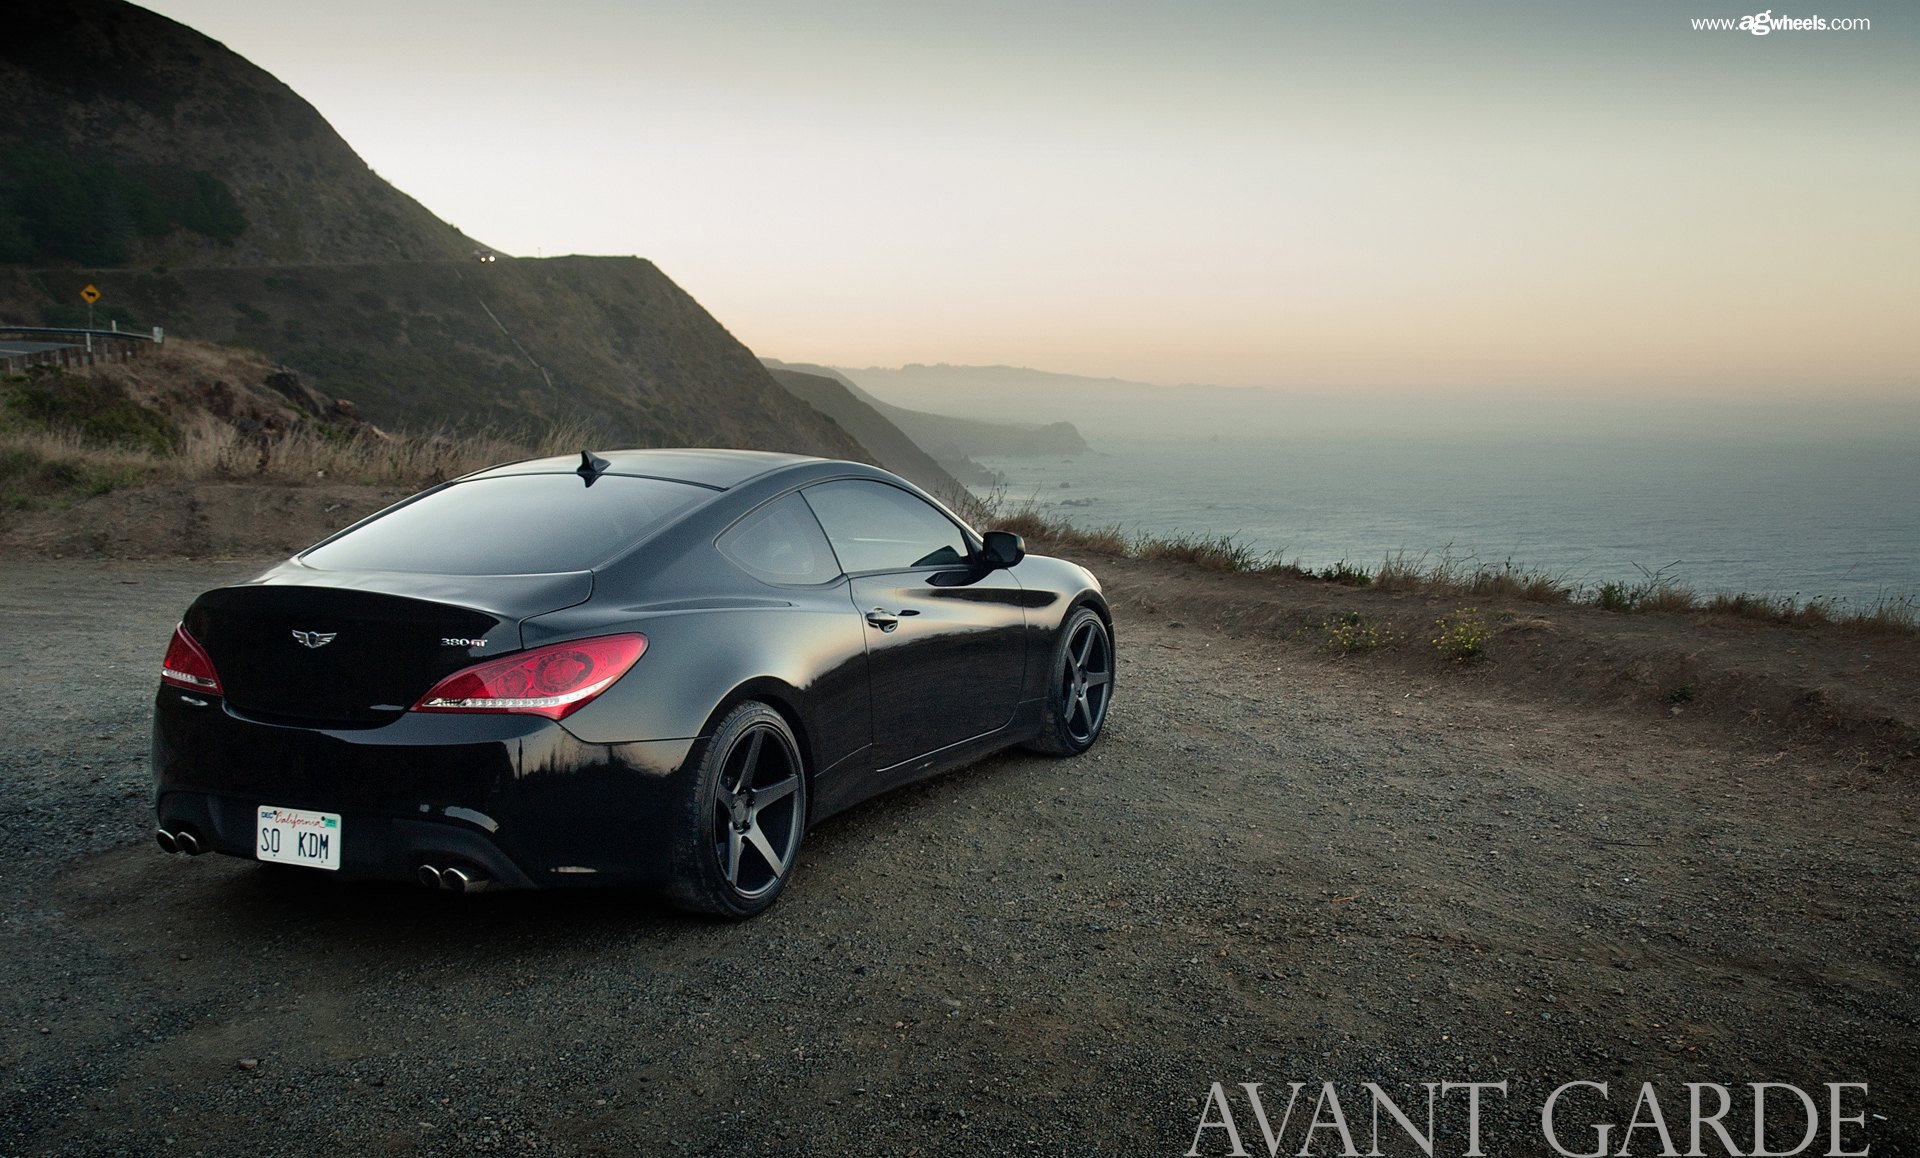 Elegant Black Hyundai Genesis Coupe Red LED Taillights   Photo By Avant Garde Wheels